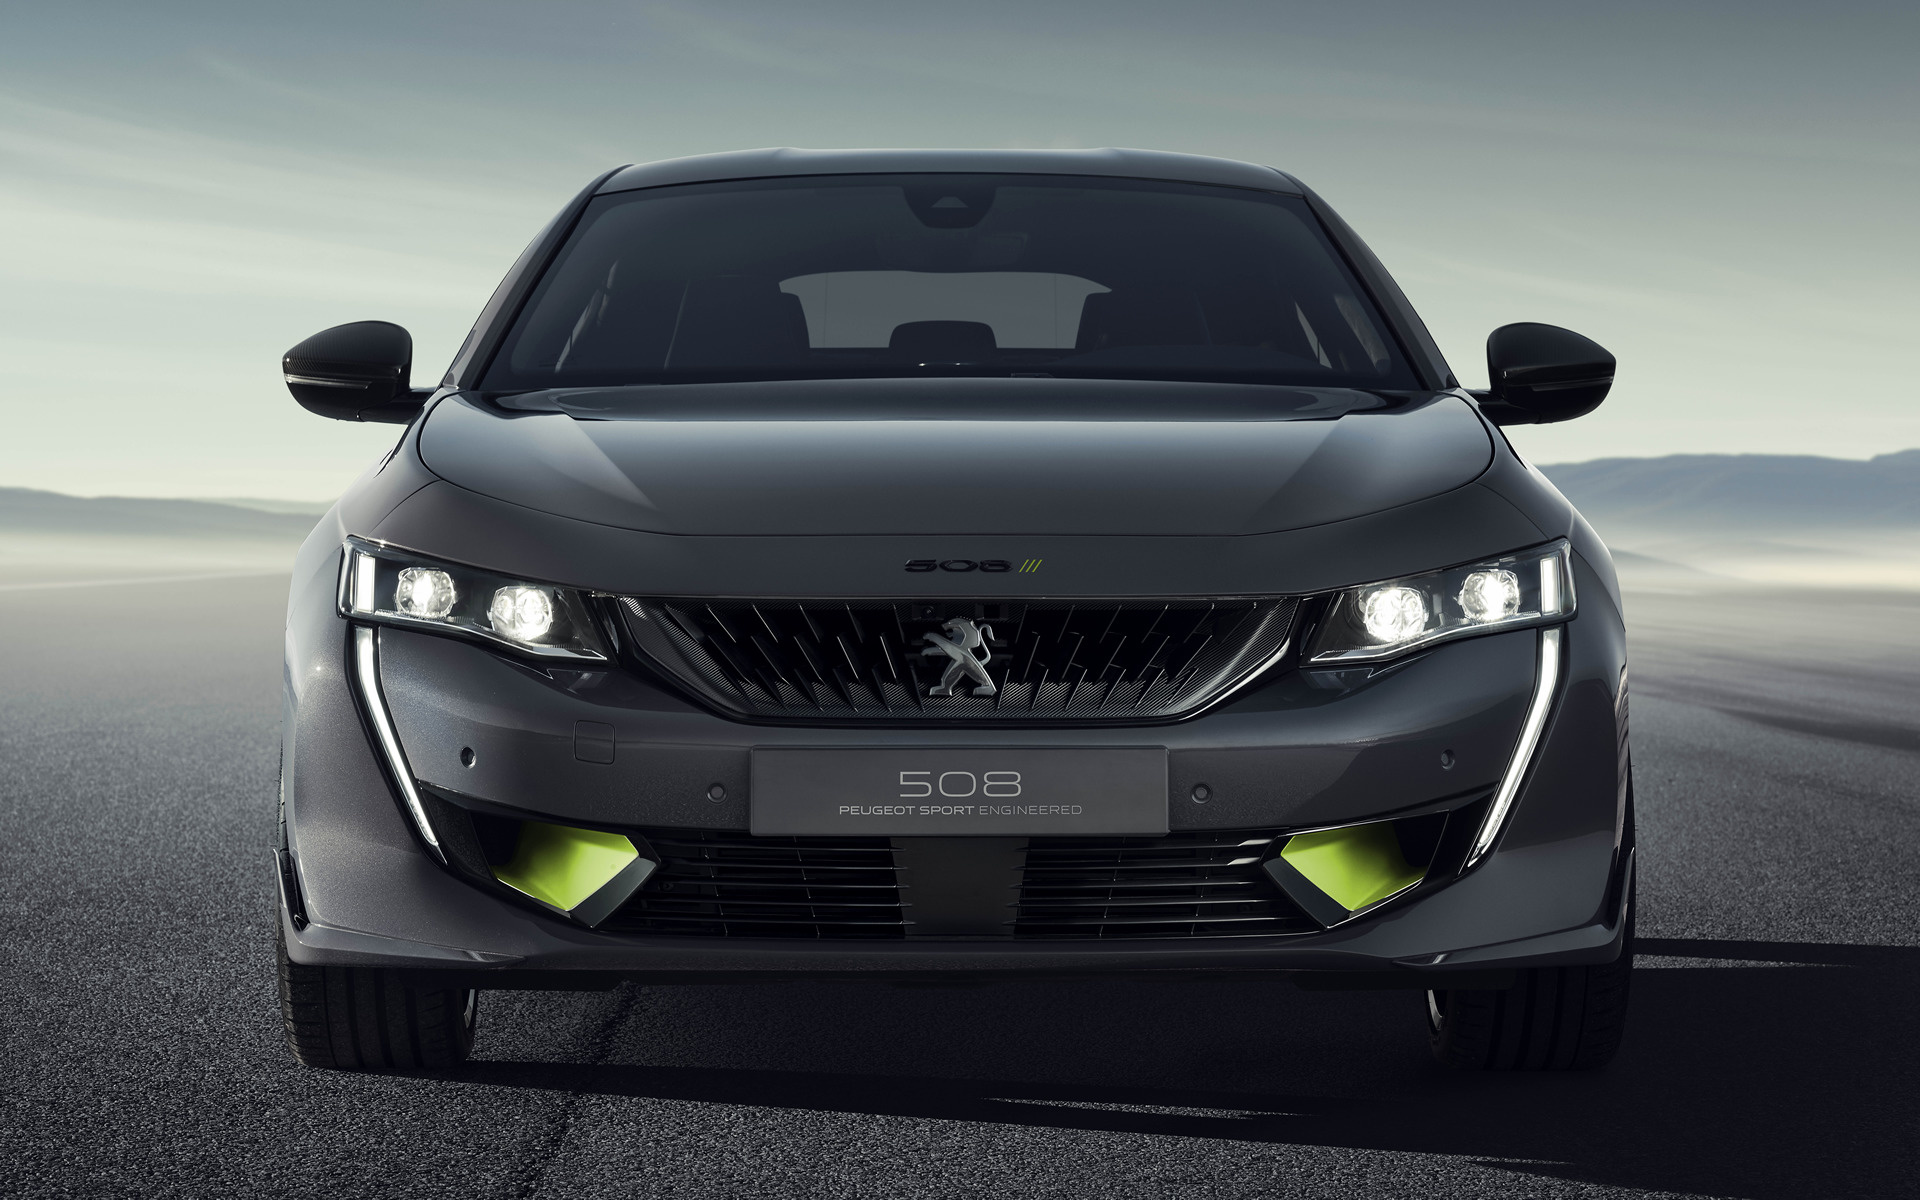 2019 Concept 508 Peugeot Sport Engineered   Wallpapers and HD 1920x1200